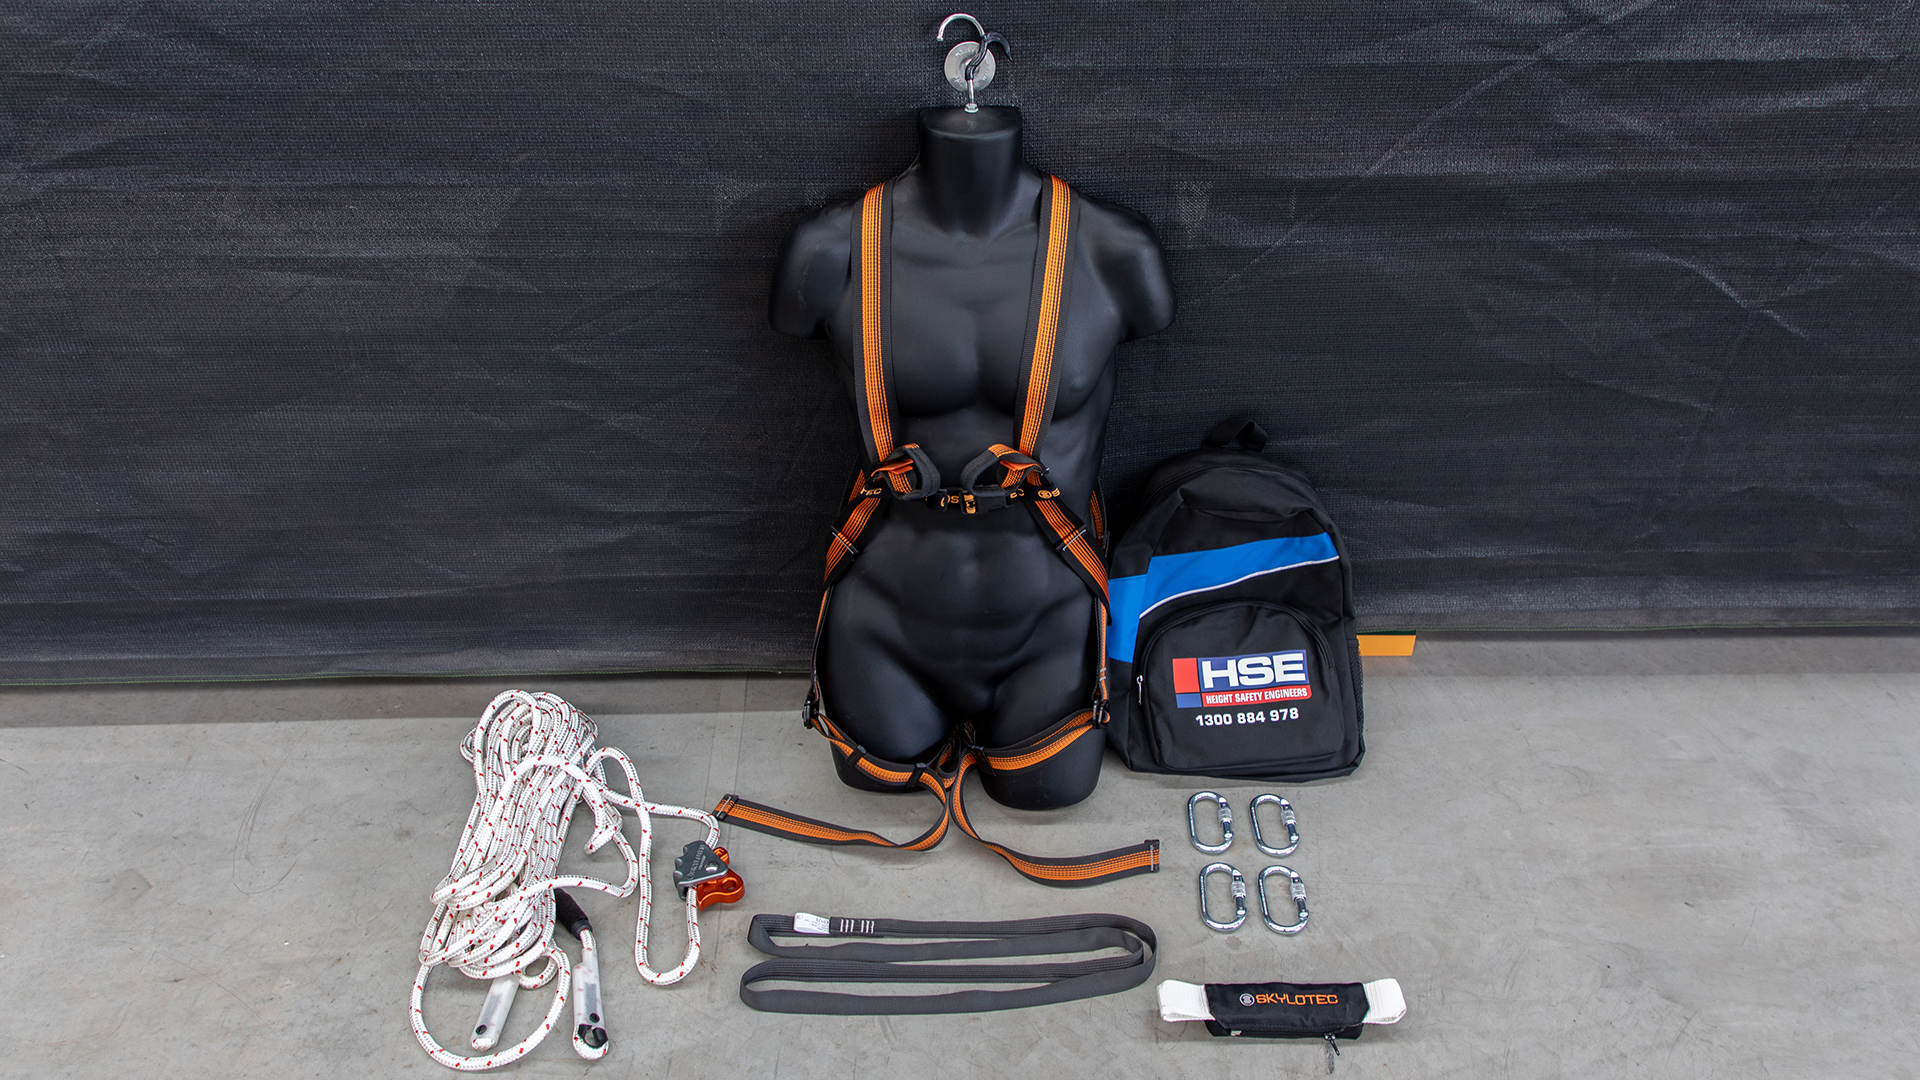 Roofer's Kit Explained: How to Work Safely at Heights